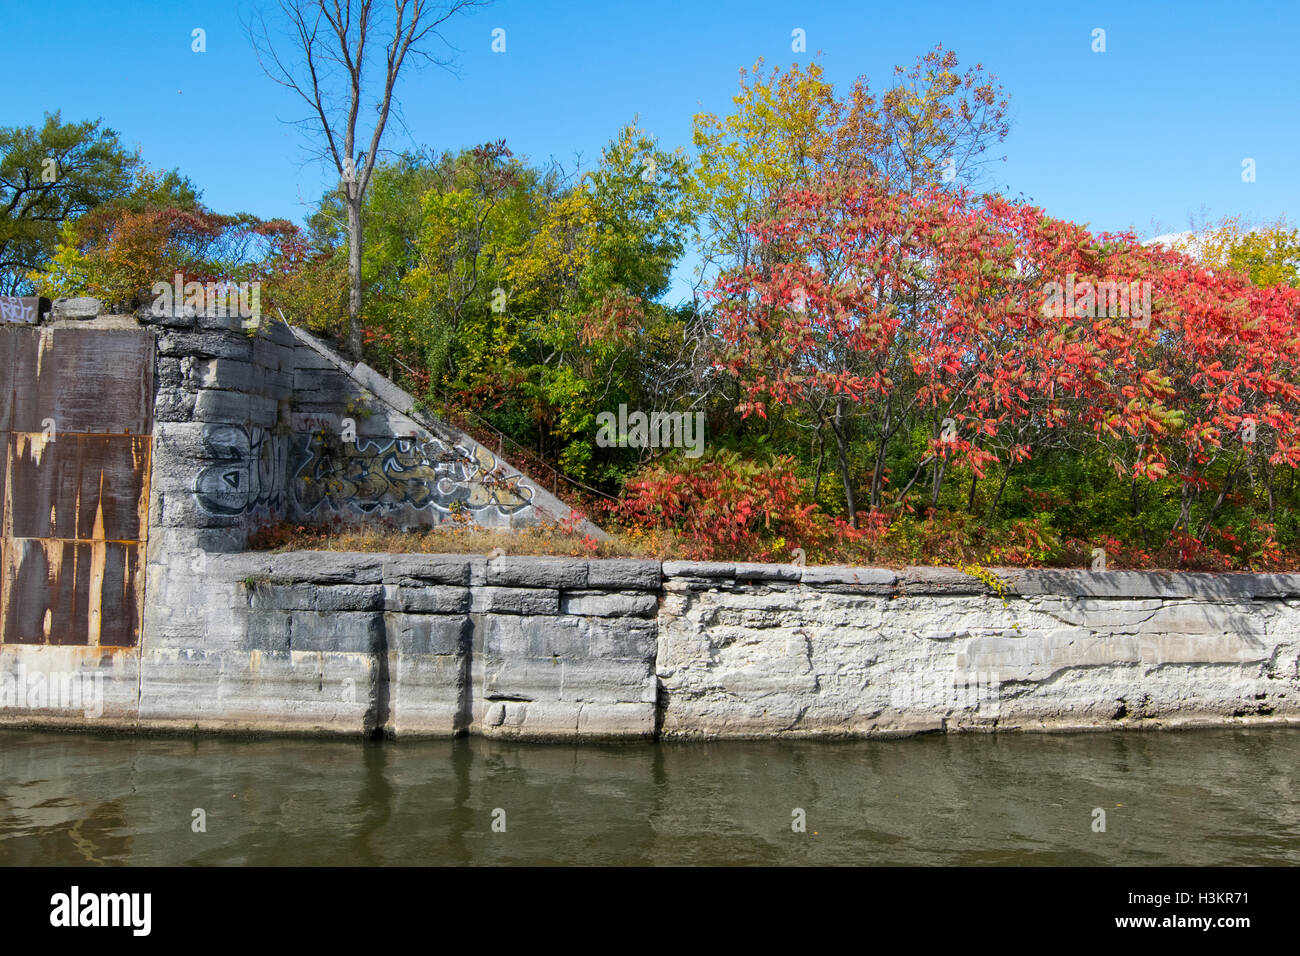 A view of the Soulange Canal. - Stock Image